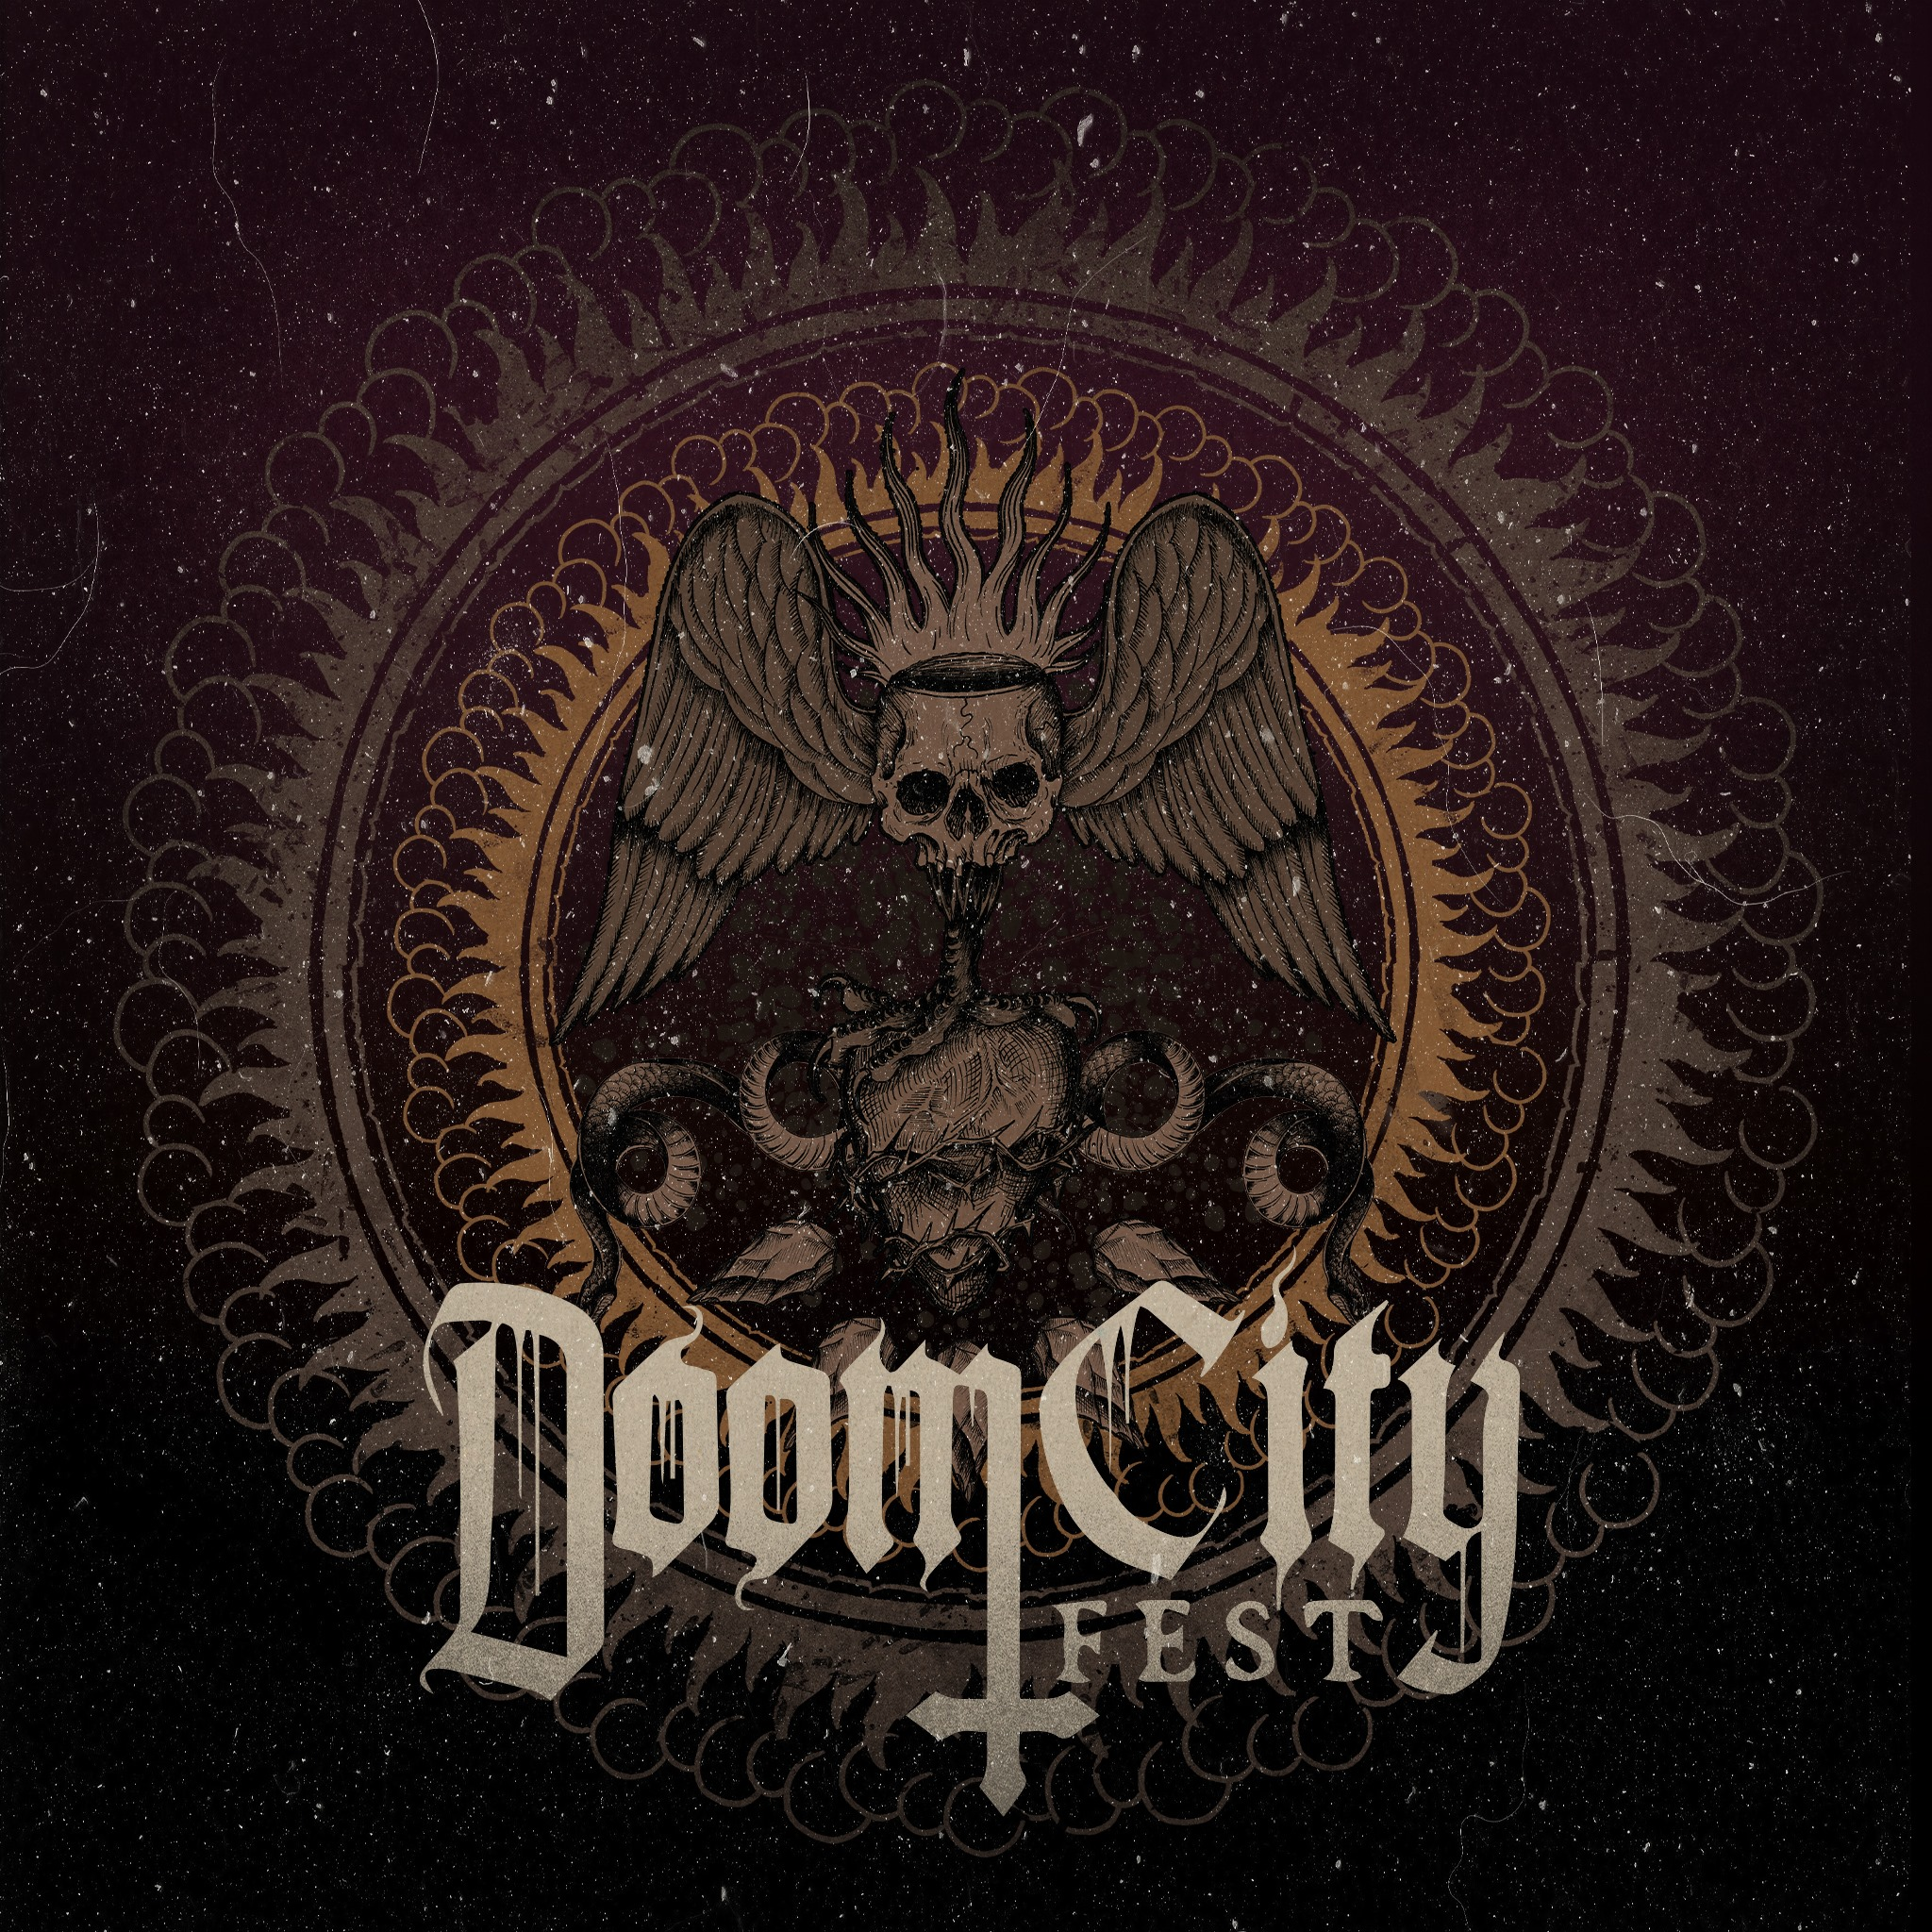 doom city fest 2020 logo